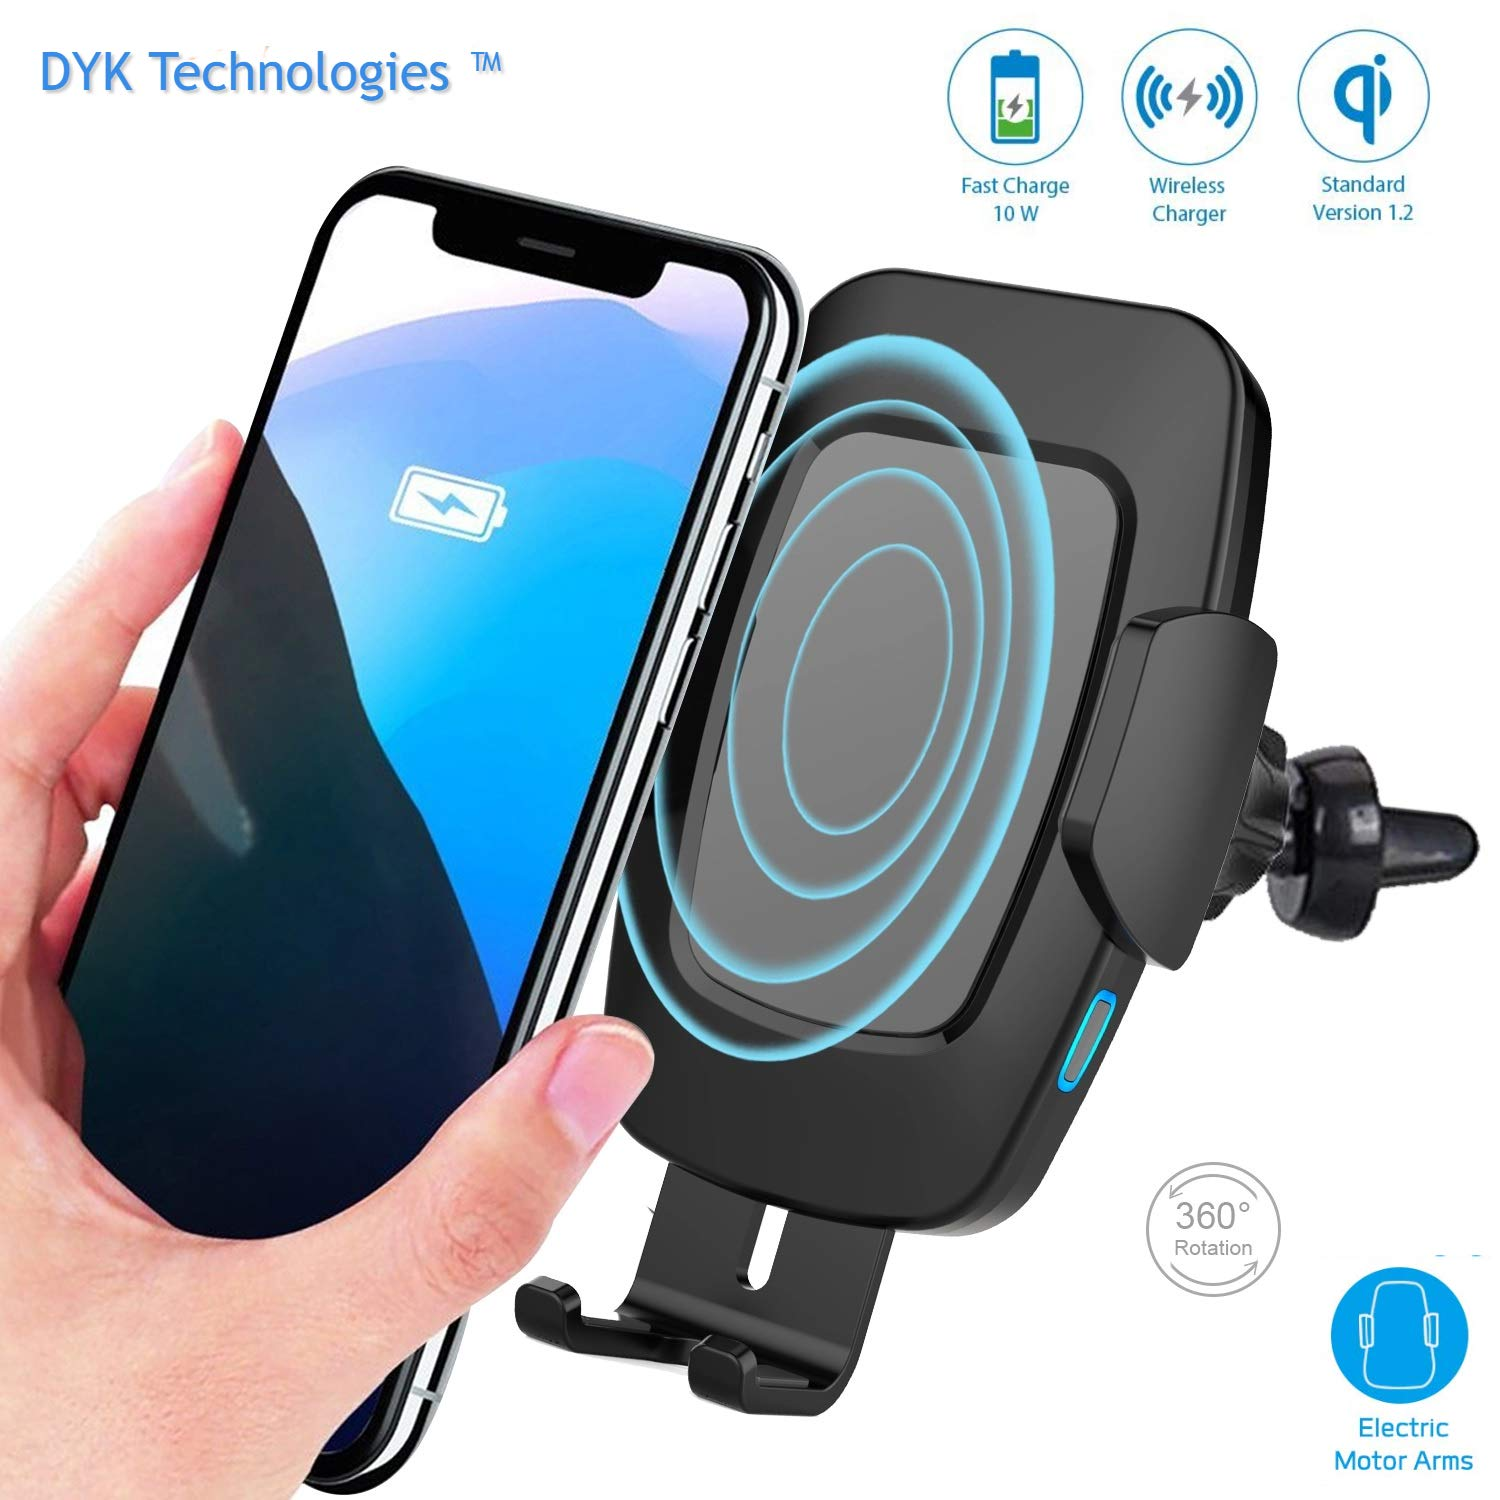 DYK Qi Wireless Car Charger Mount, Automatic Clamp, 10W 7.5W Fast Charging Air Vent Windshield Dashboard Phone Holder, Compatible with iPhone Xs,Max,XR,8, Samsung S10,S9,S8, Note8,9, Pixel, LG.